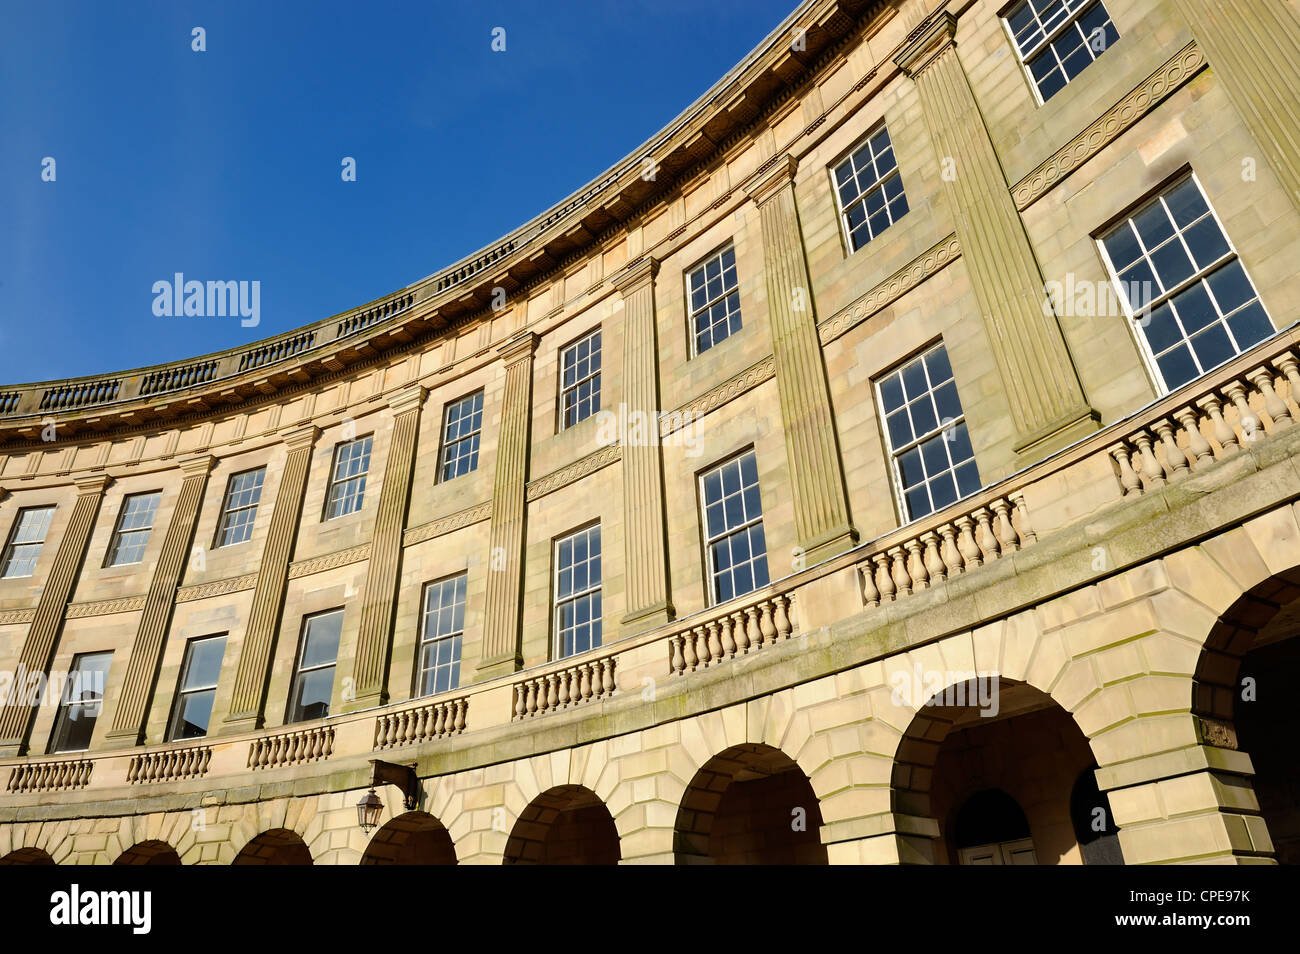 The Crescent, Buxton, Peak District National Park, Derbyshire, England, United Kingdom, Europe - Stock Image